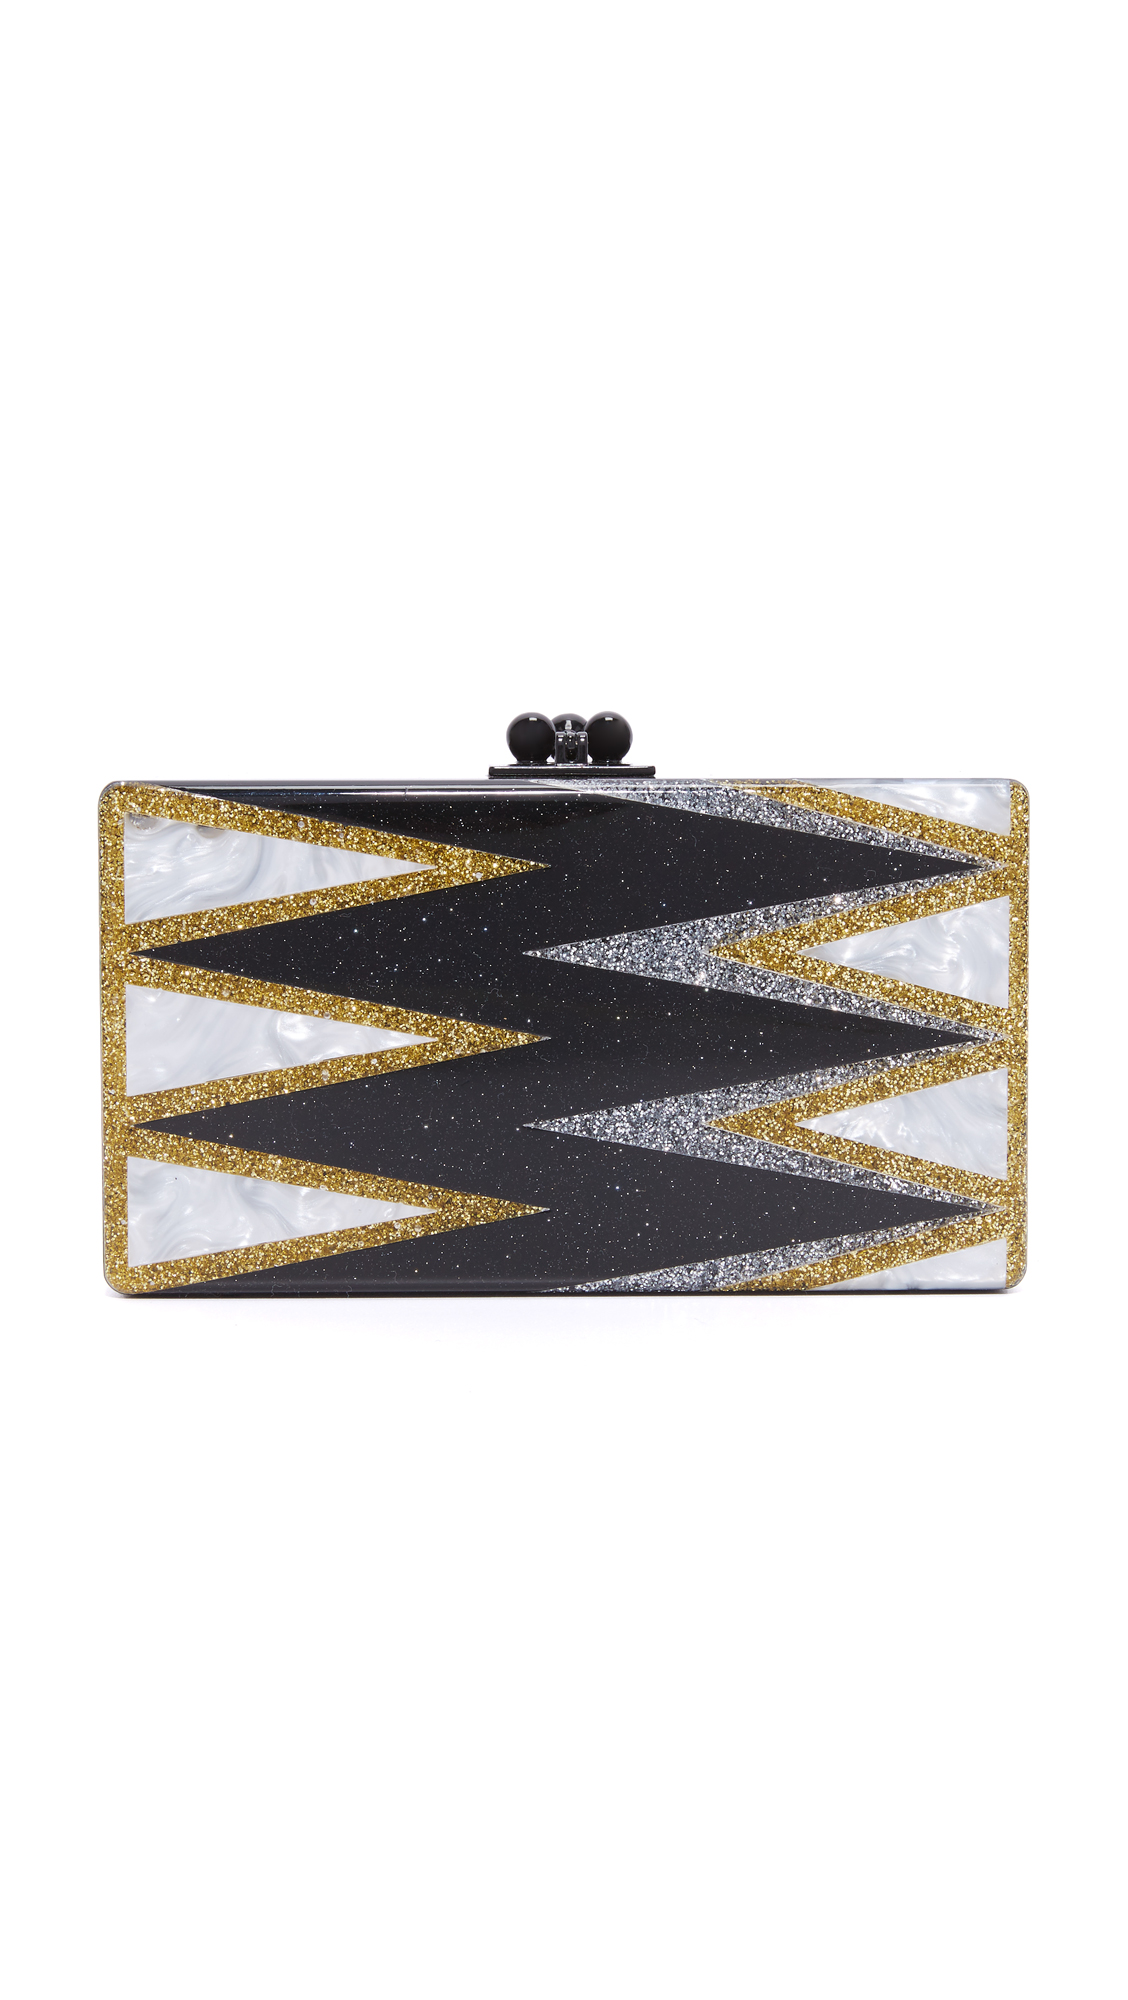 Pearlescent triangles create a zigzag effect on this glamorous, glitter infused Edie Parker clutch. Kiss lock clasp and hinge construction. Unlined interior with inset vanity mirror. Dust bag and cleaning cloth included. Fabric: Acrylic. Weight: 15oz / 0.43